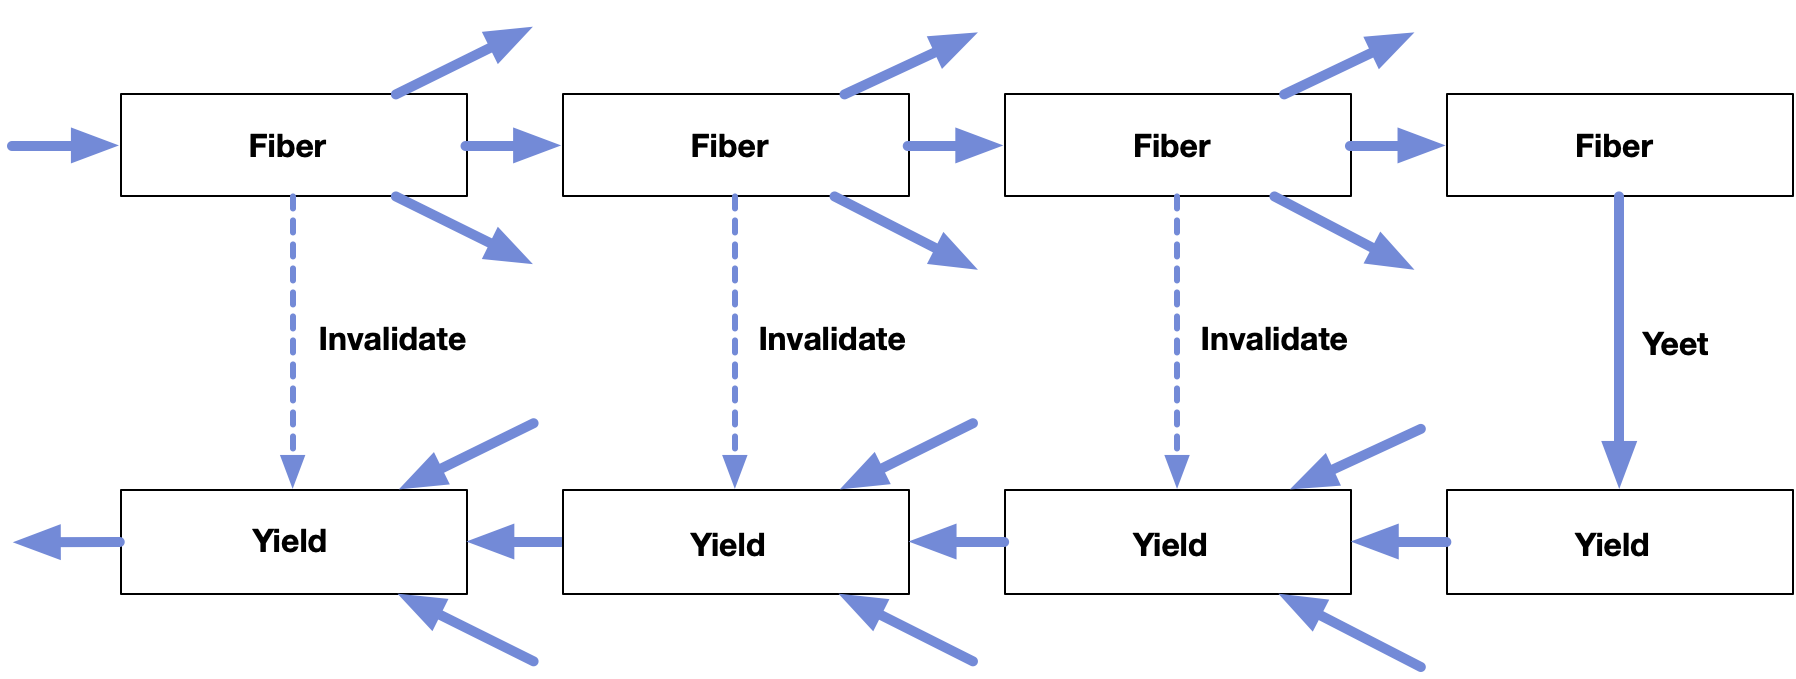 chain of fibers in the forwards direction turns down and back to yield values in the backwards direction